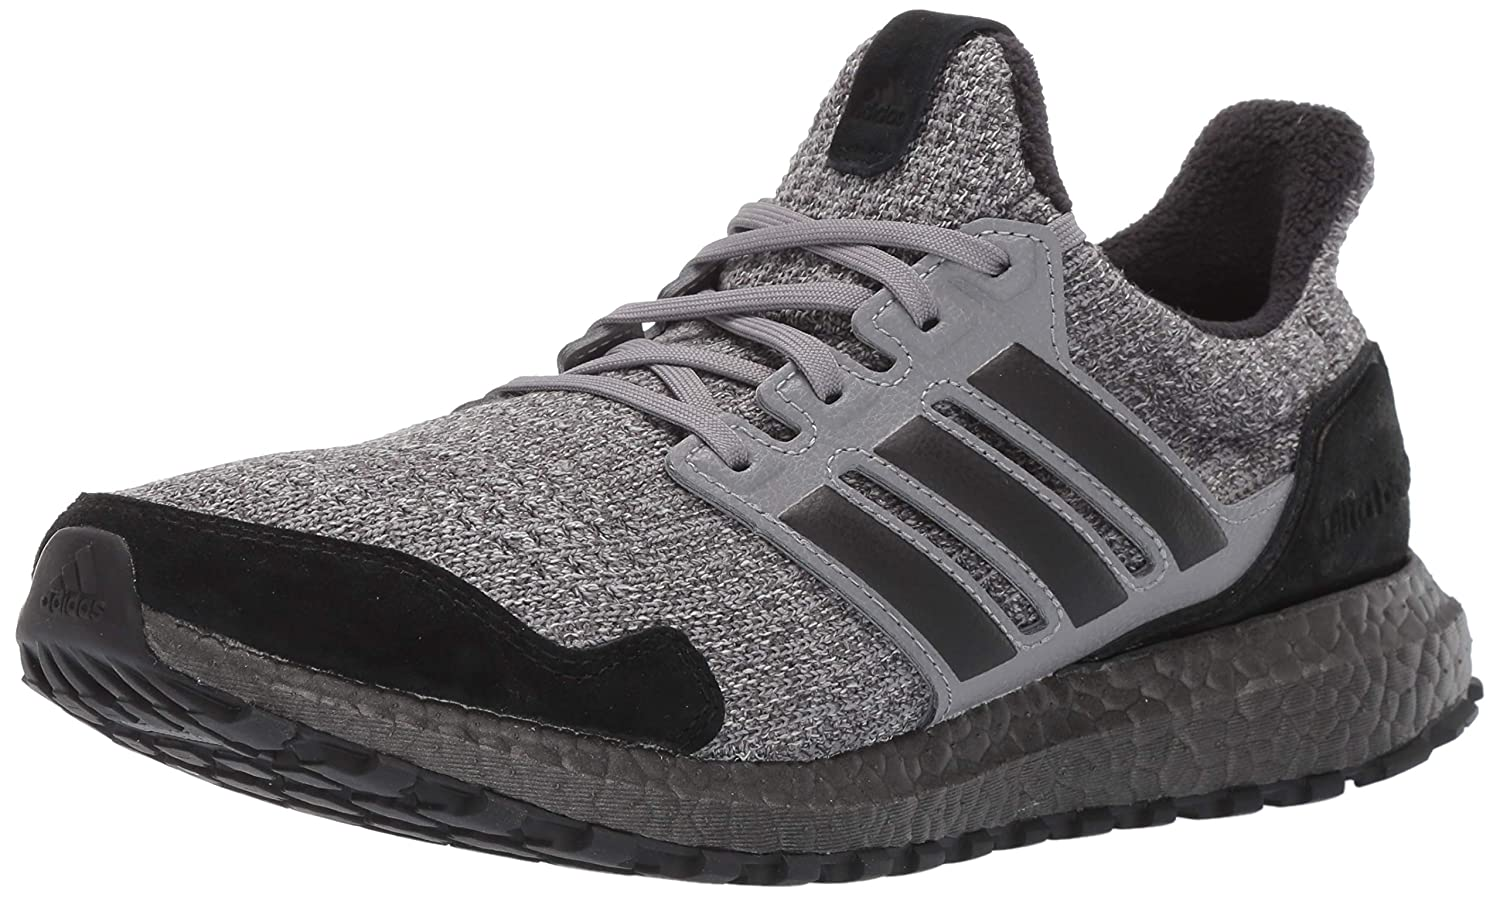 c685c756cc7b3 adidas x Game of Thrones Men s Ultraboost Running Shoes